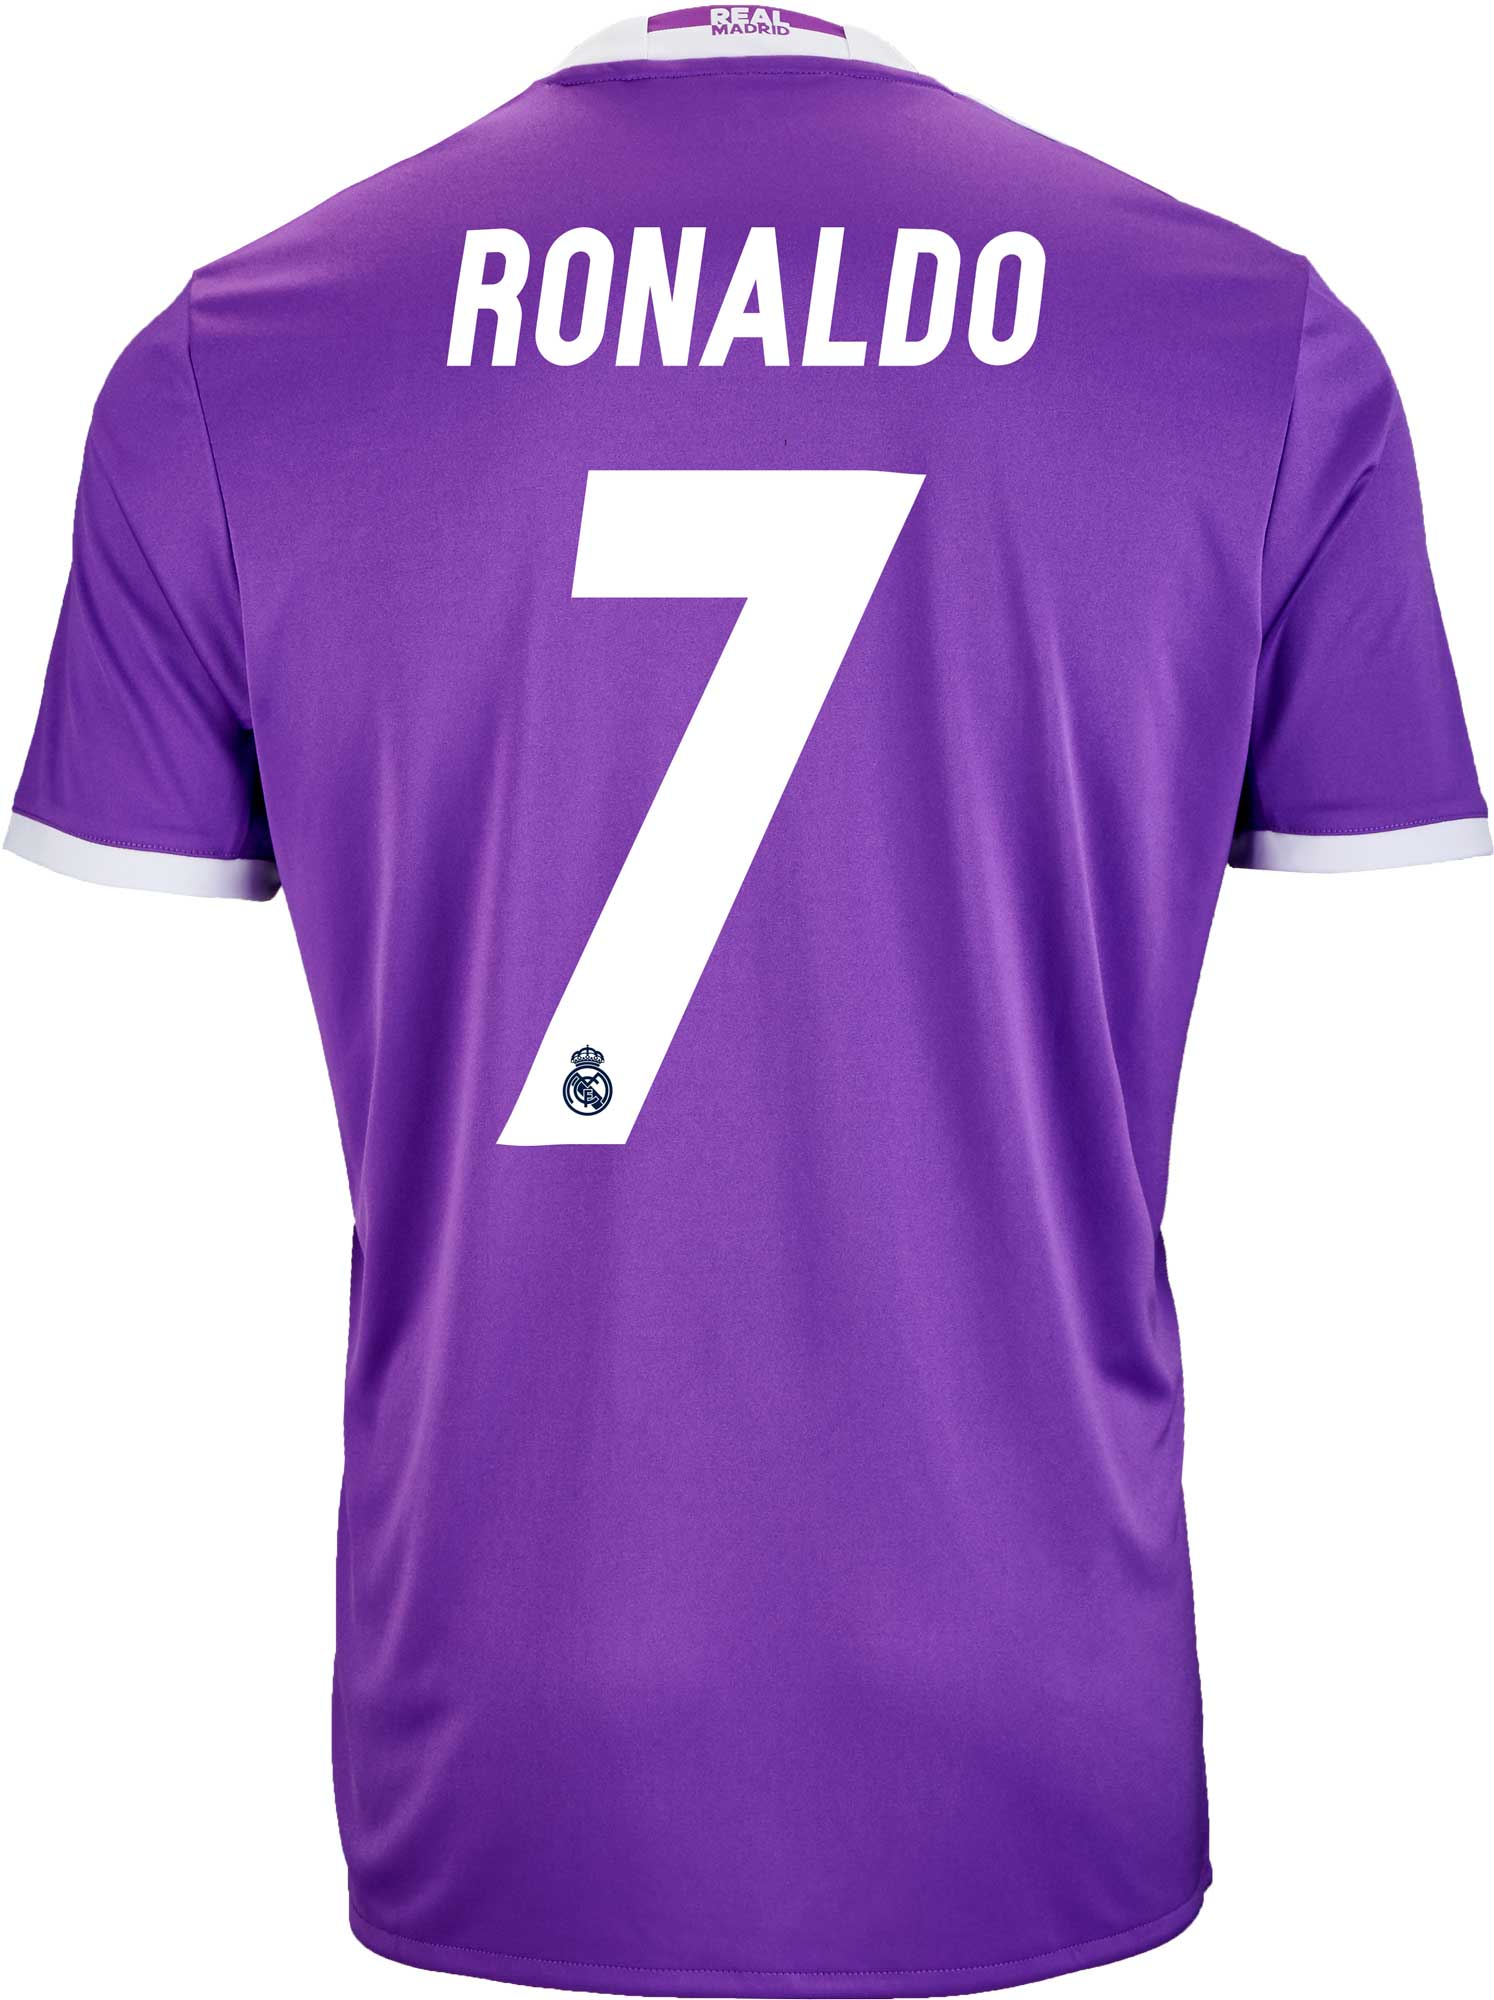 super popular a9b32 35f61 adidas Ronaldo Real Madrid Jersey - 2016 Real Madrid Jerseys